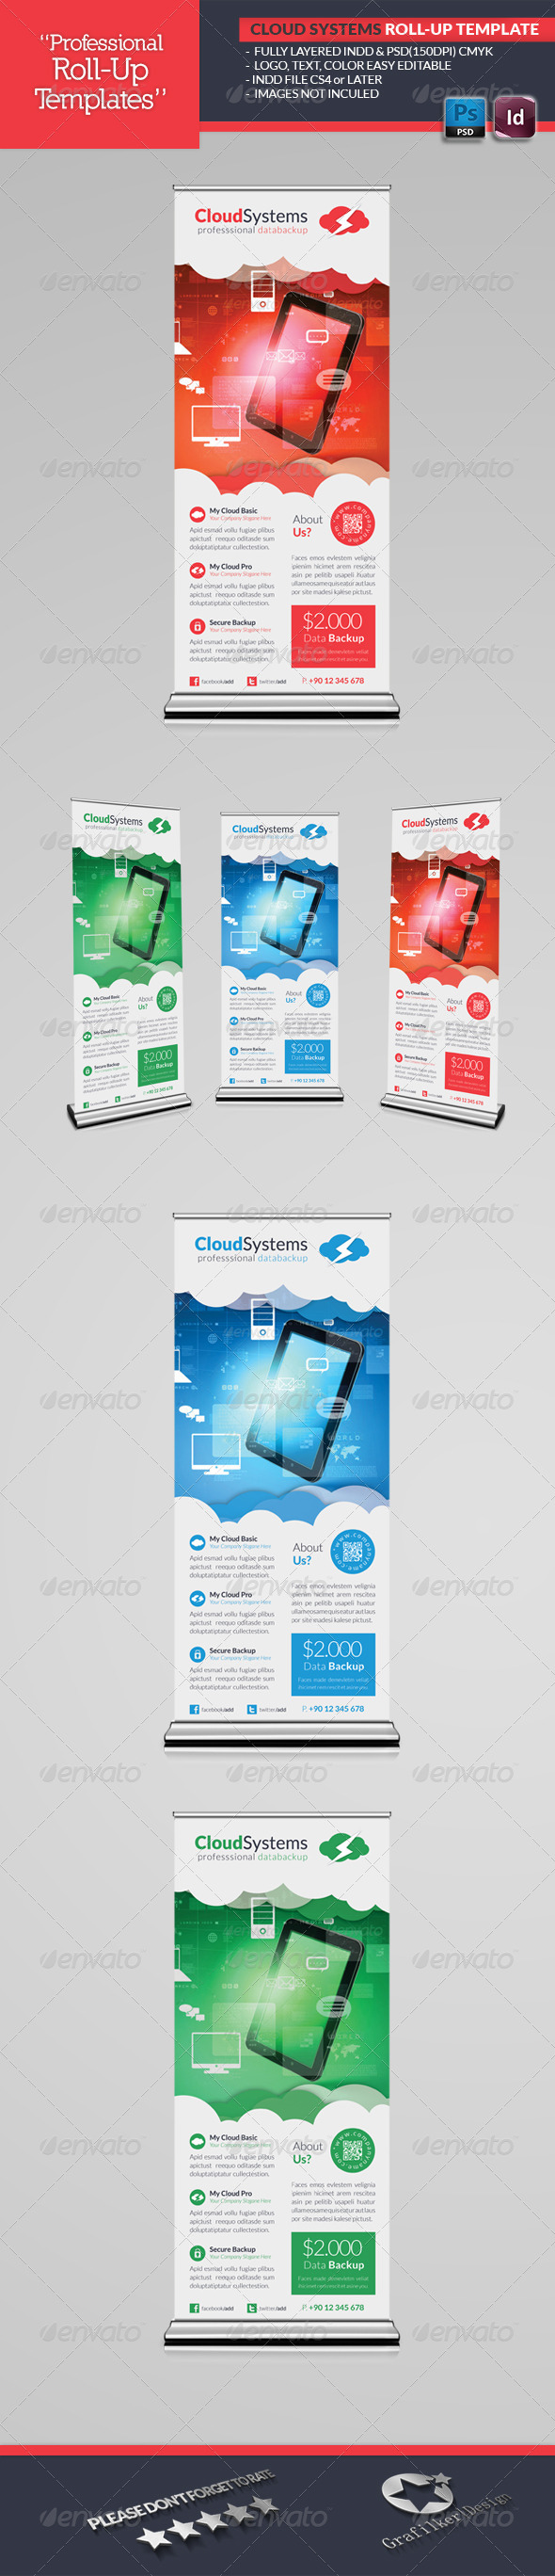 Cloud Systems Roll-Up Template - Signage Print Templates